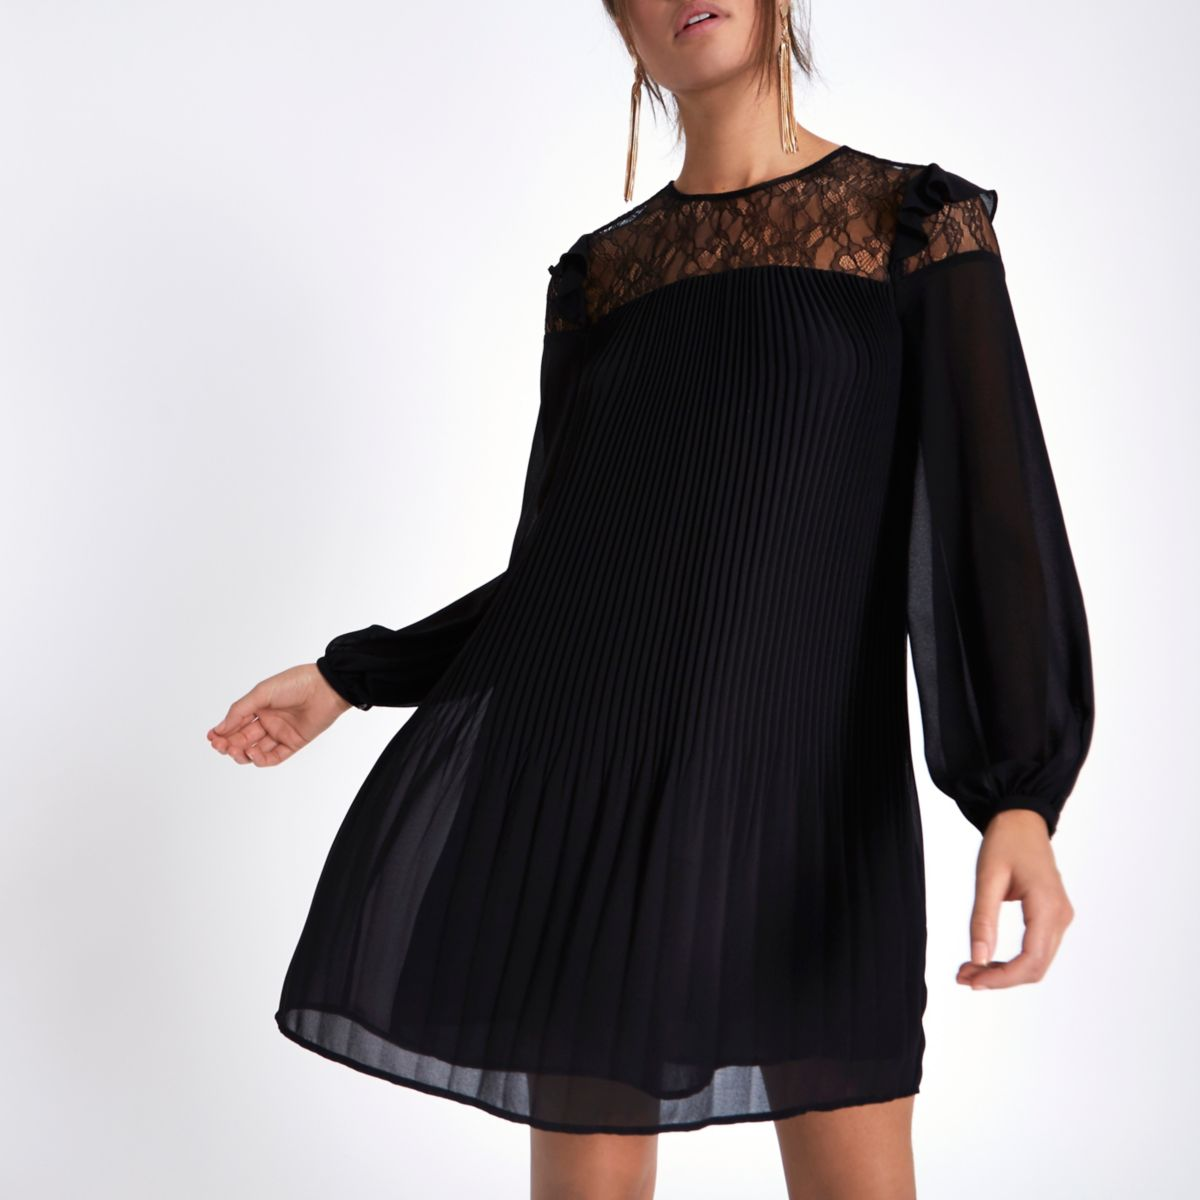 Black pleated lace frill swing dress